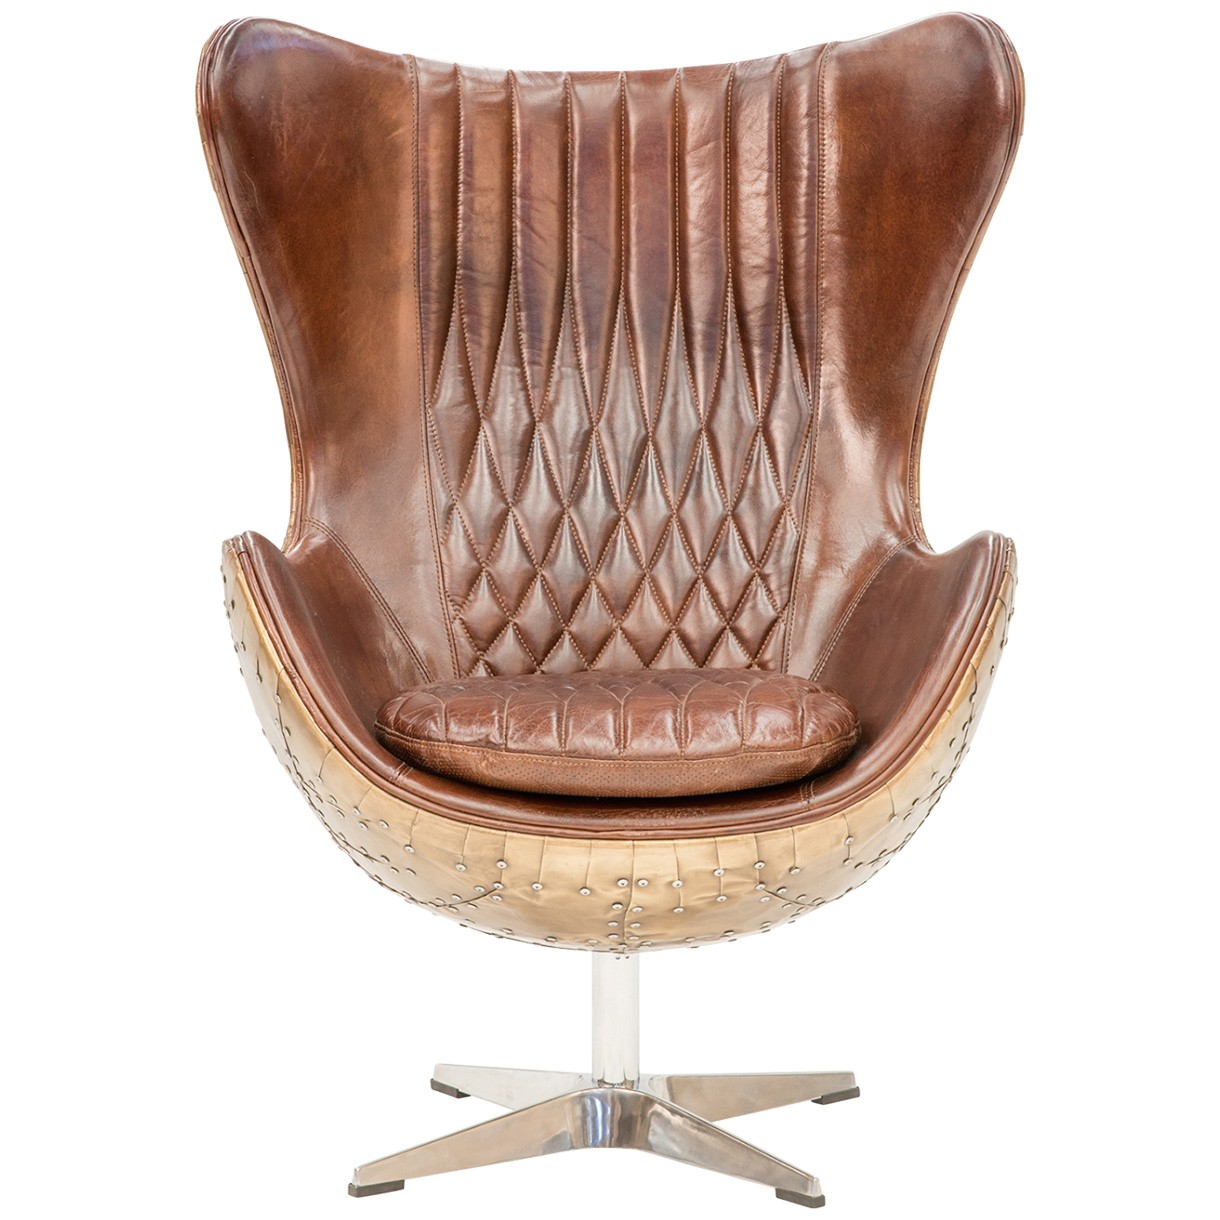 Dudley Industrial Aged Leather & Alloy Egg Chair